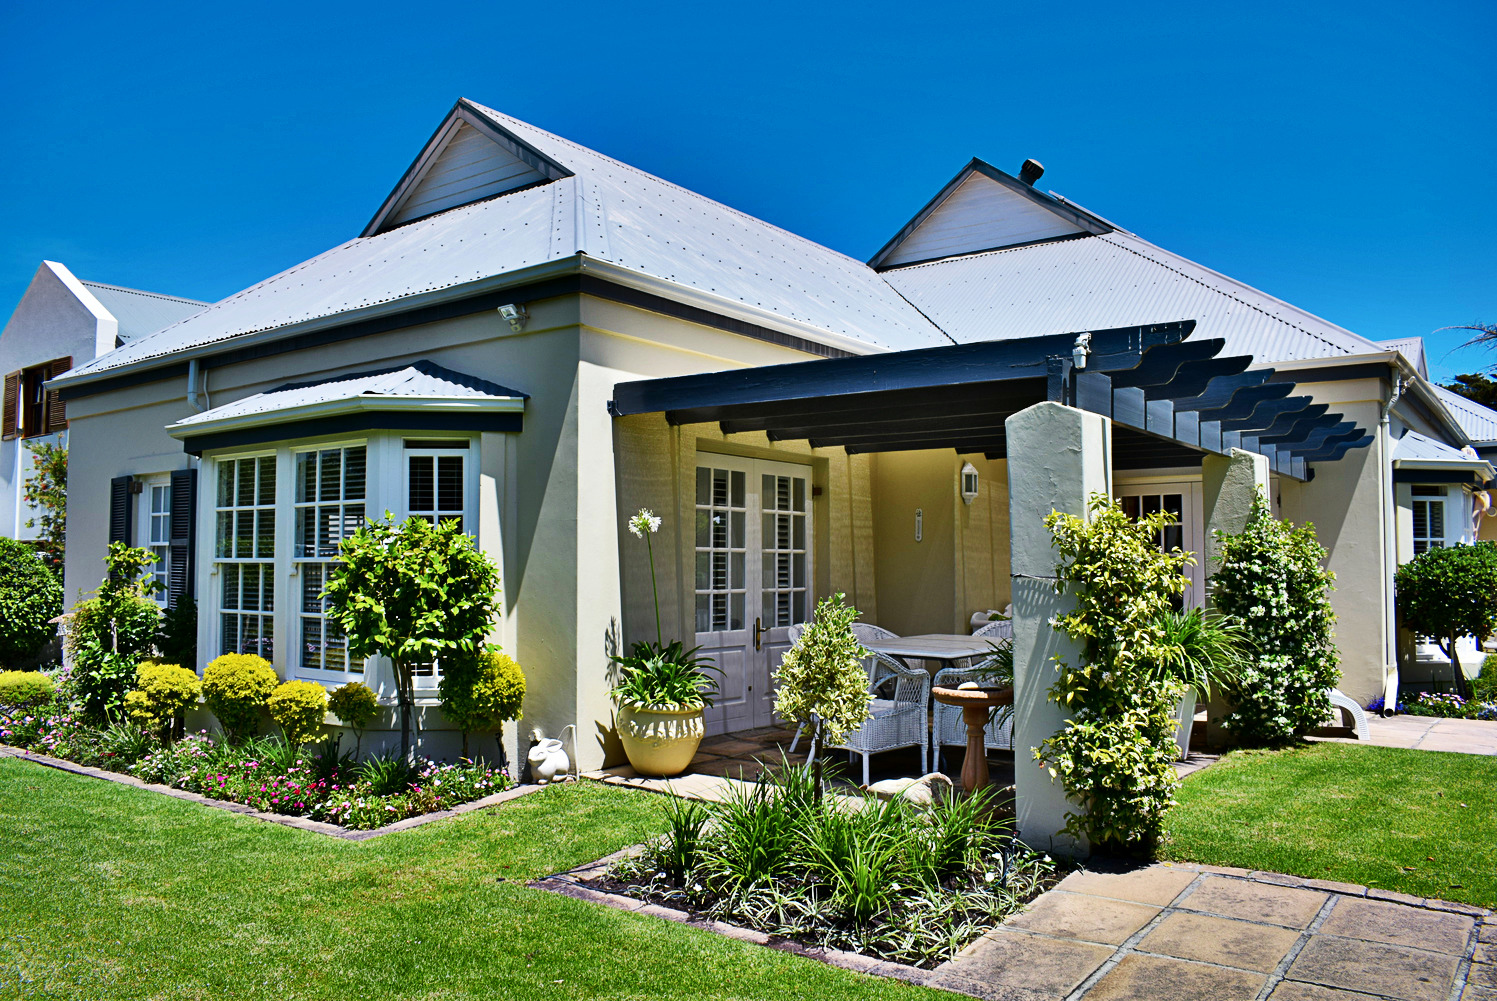 3 Bedroom Home for Sale in Eastcliff